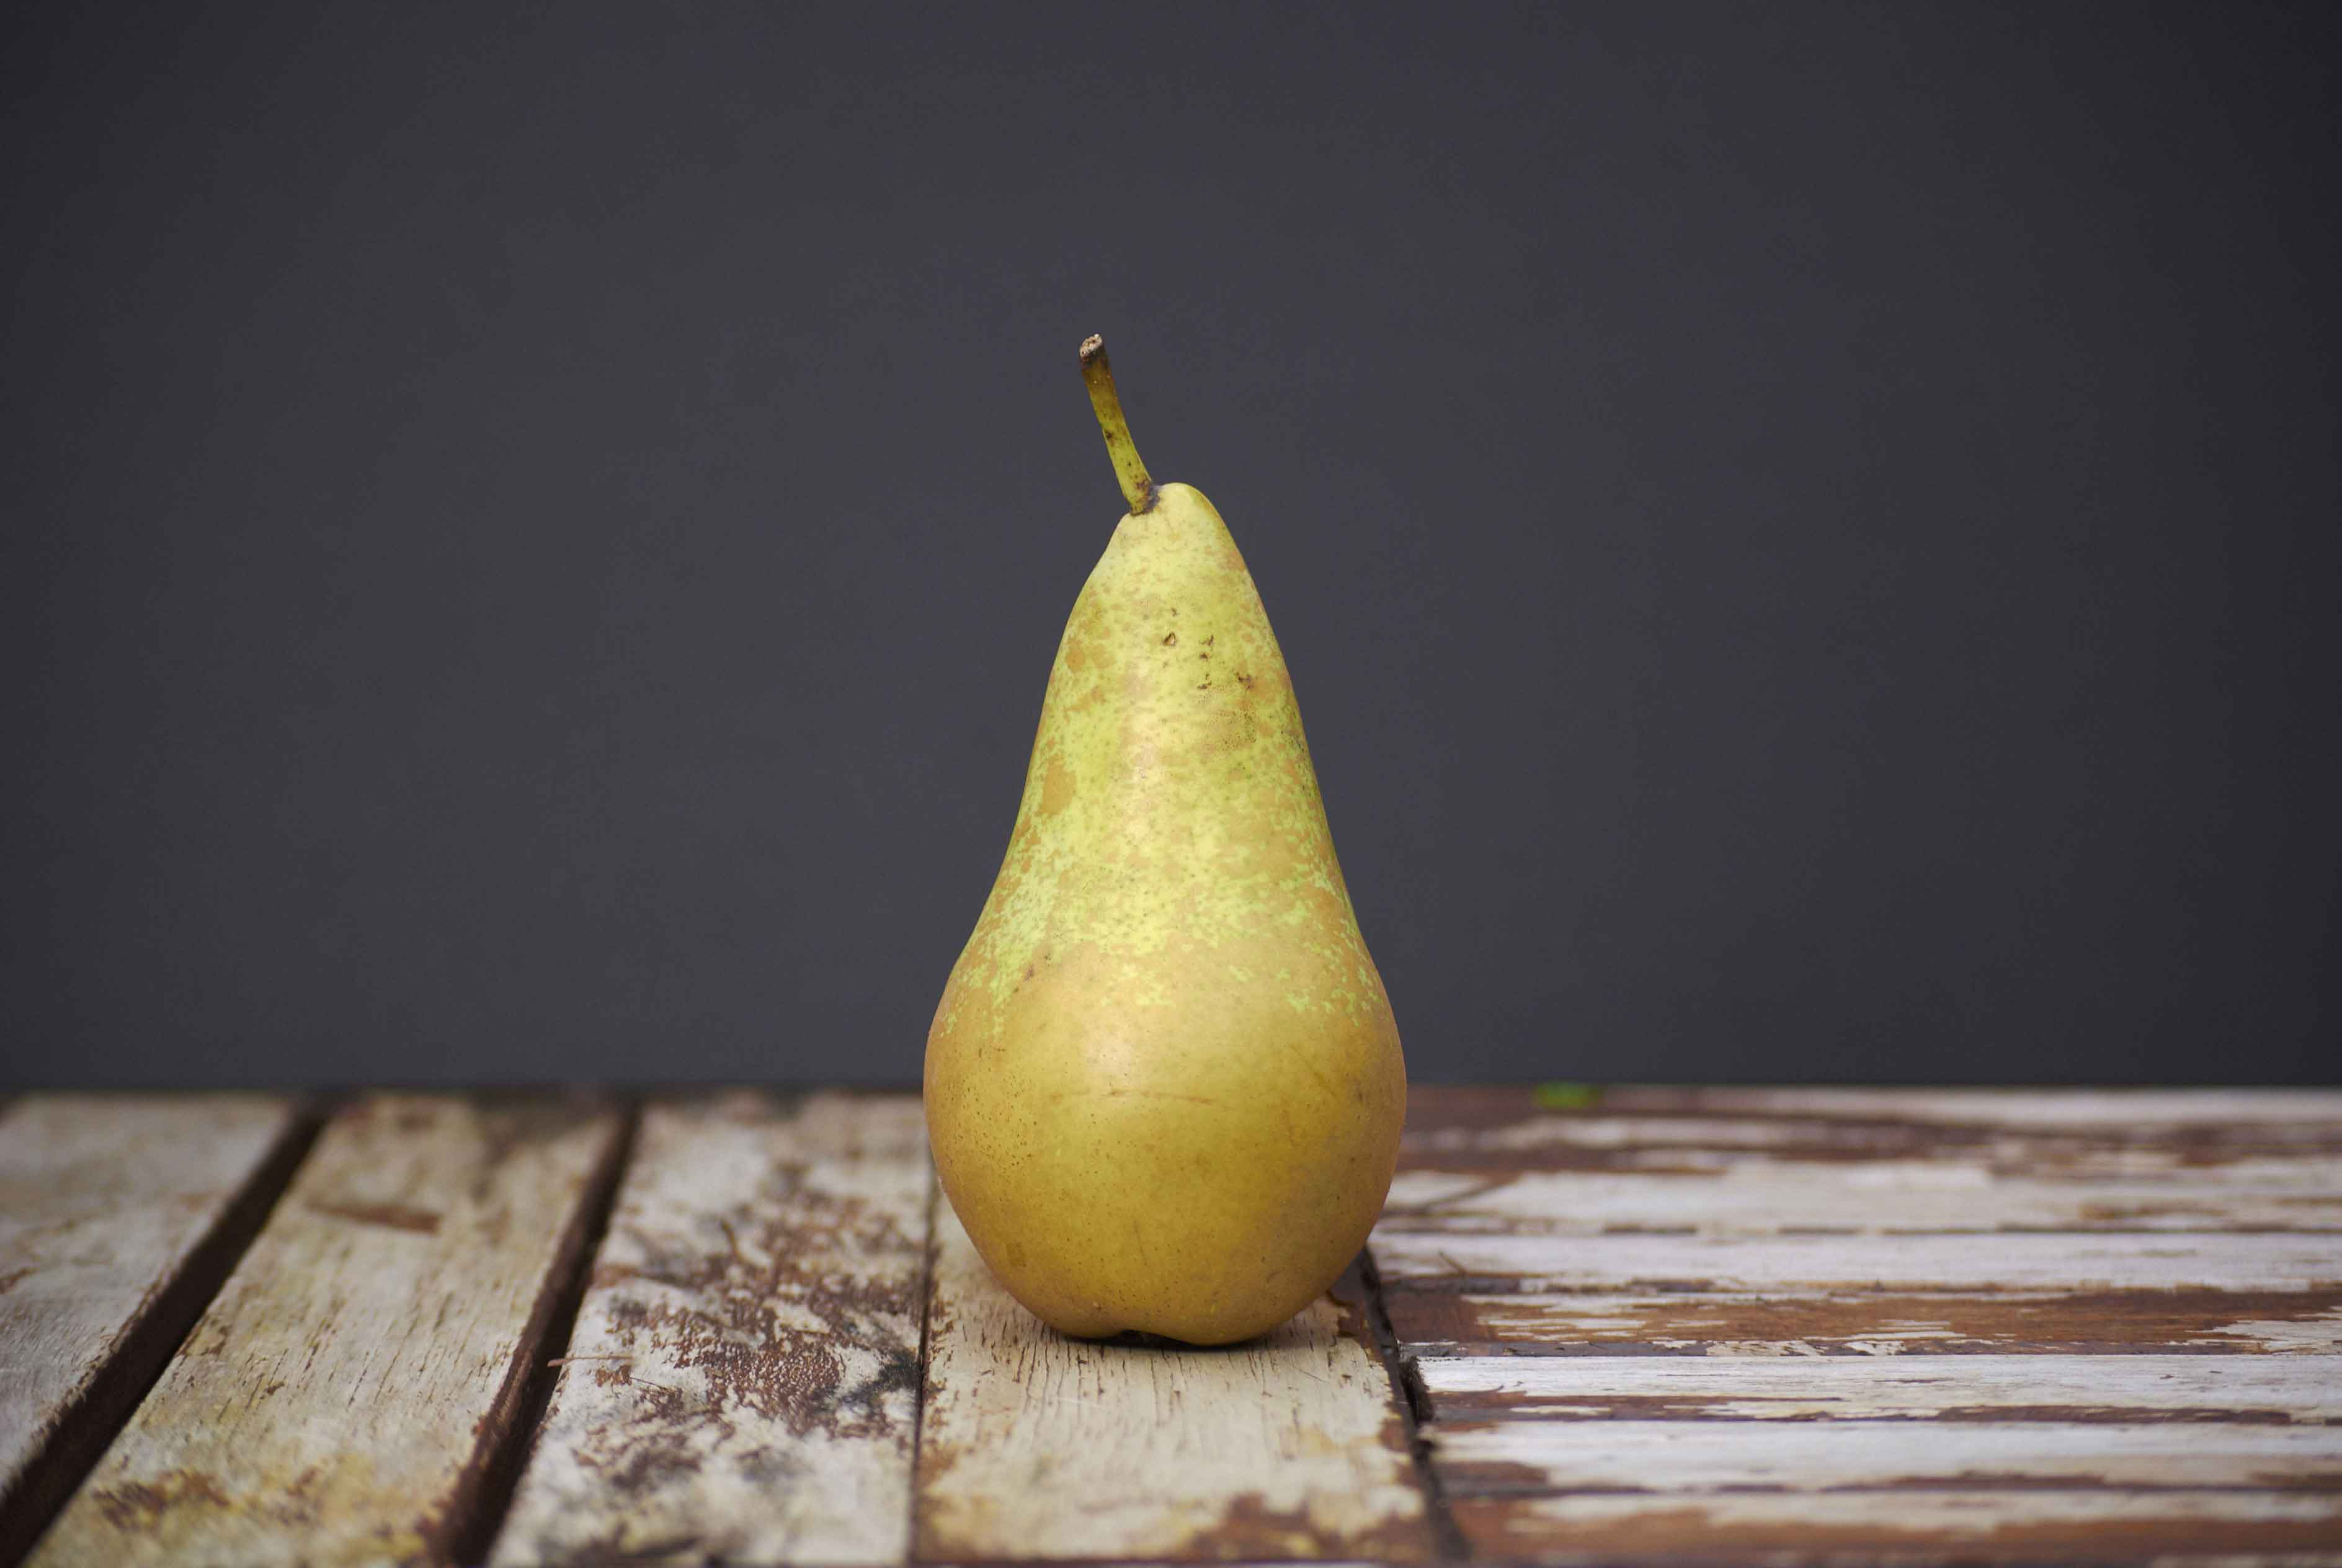 A pear sitting on a wooden board